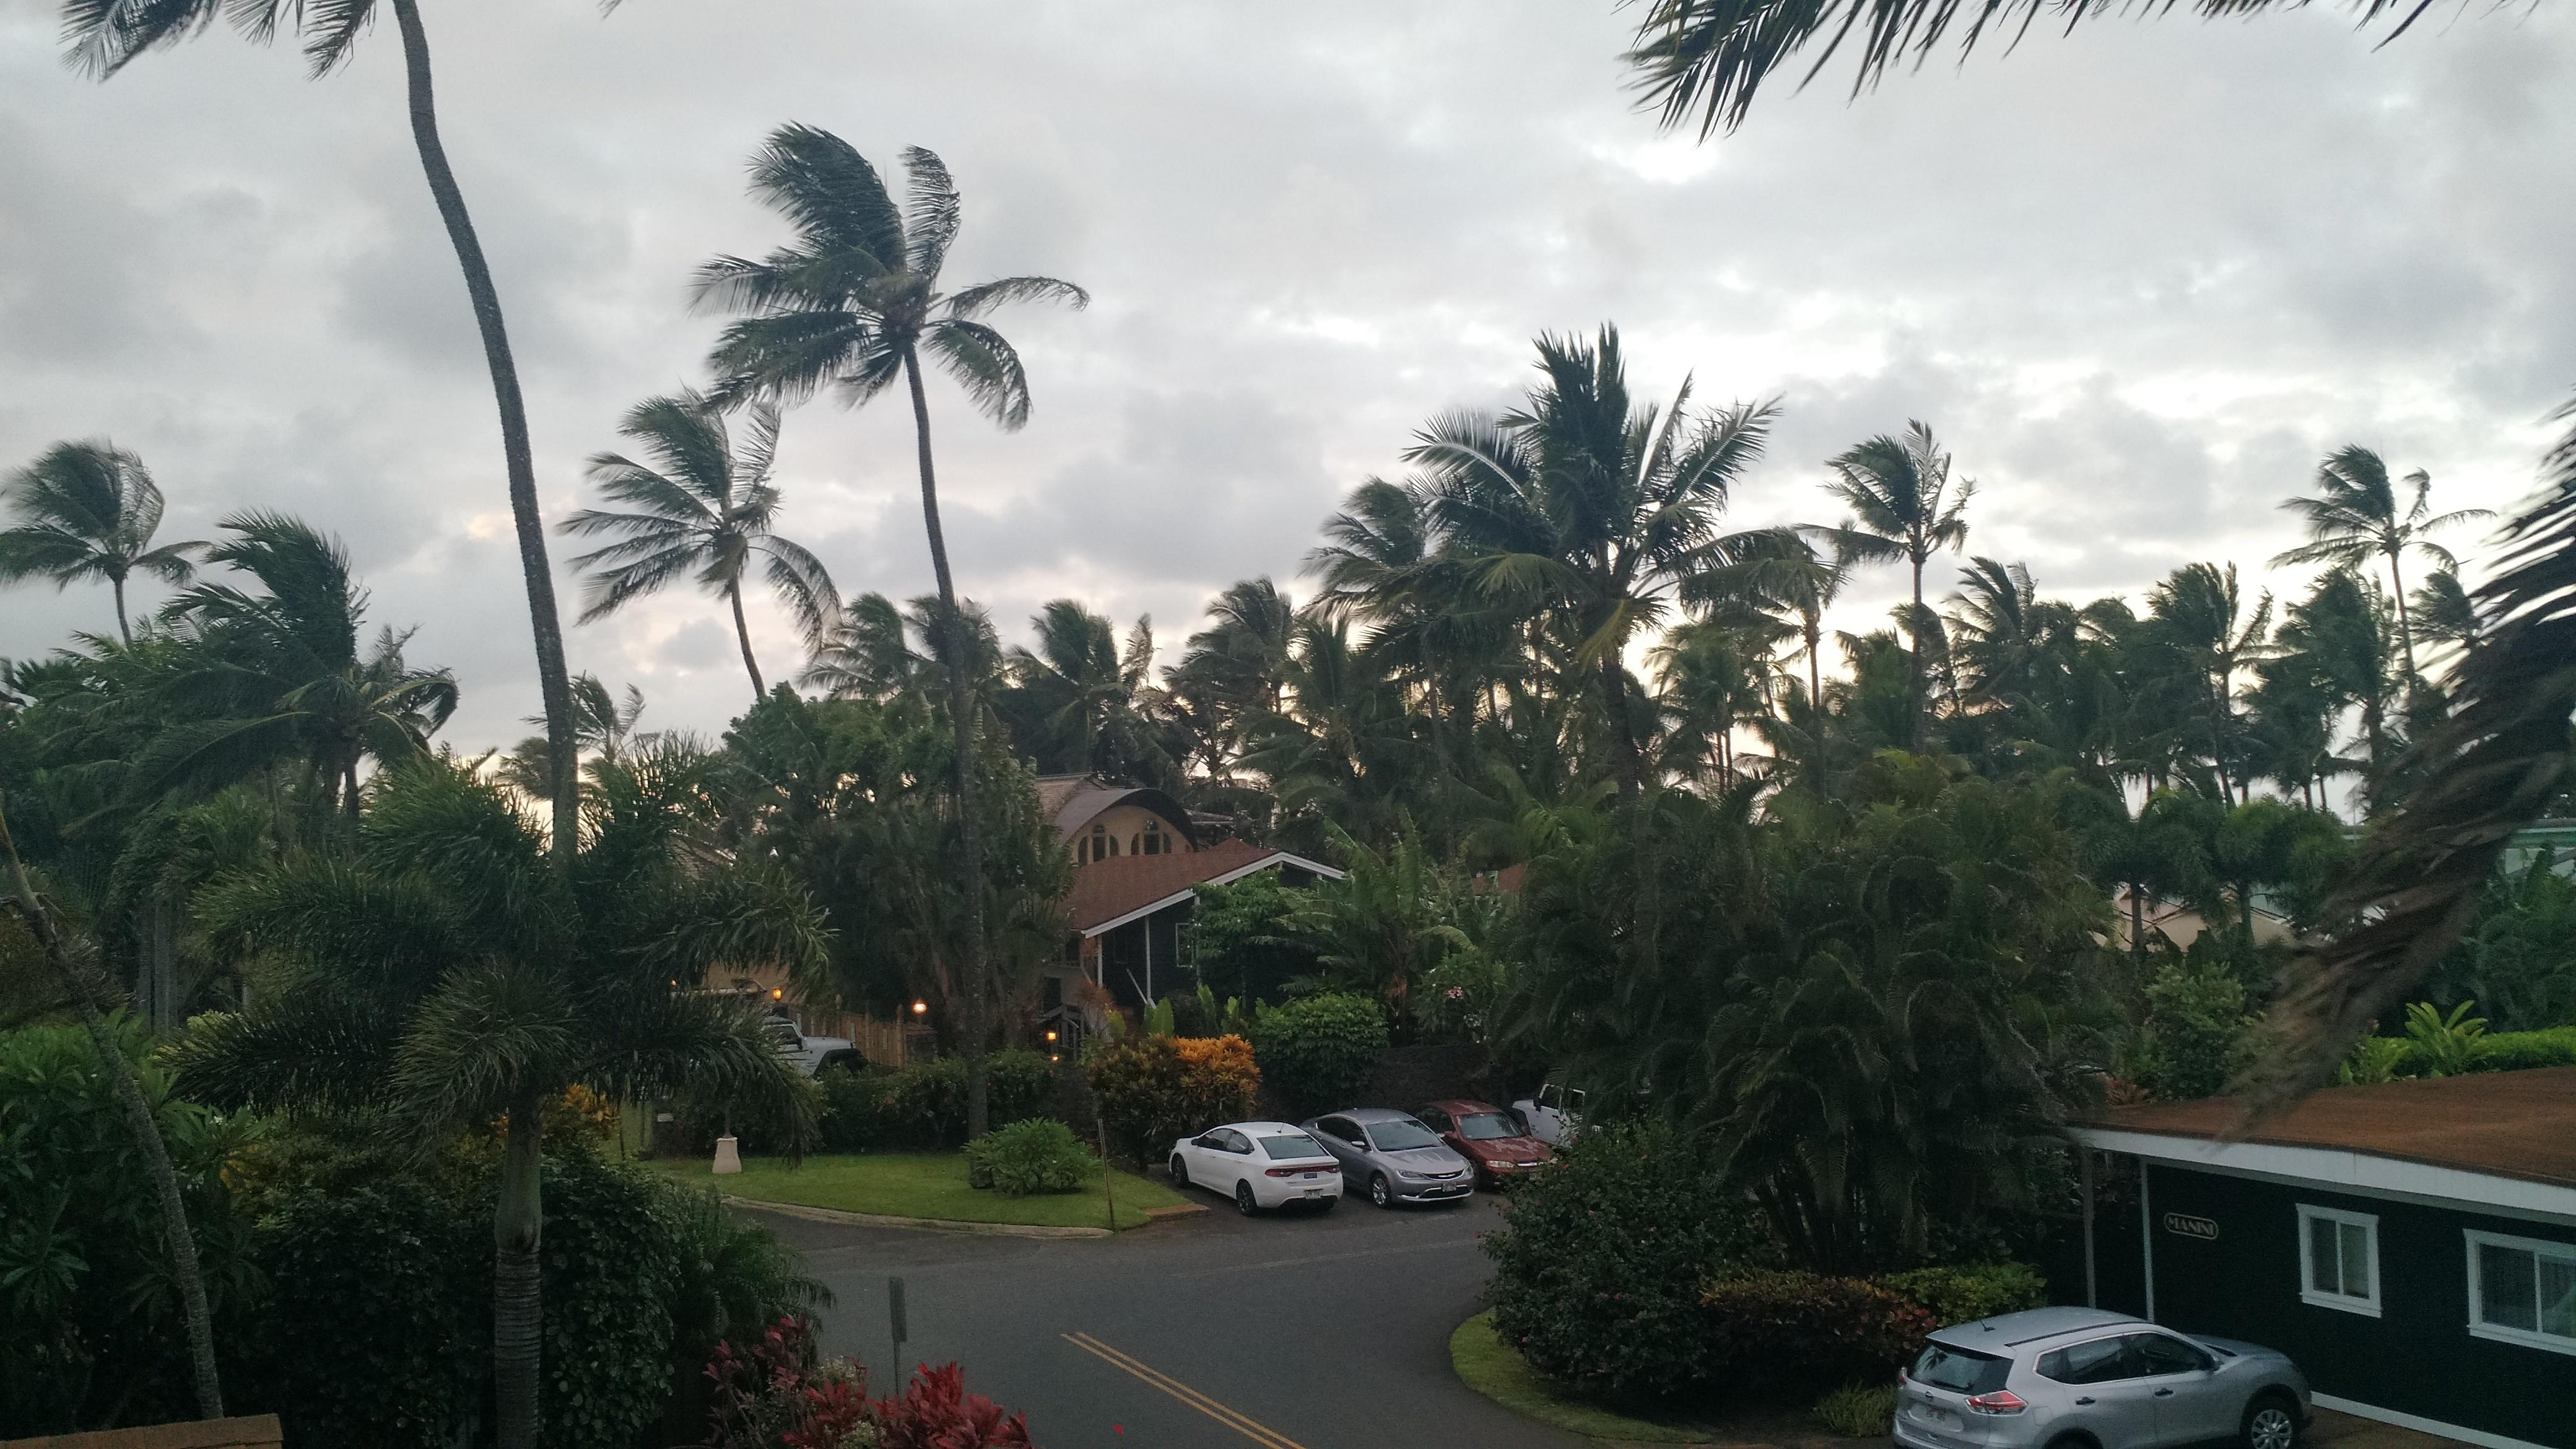 View from Orchid's lanai.